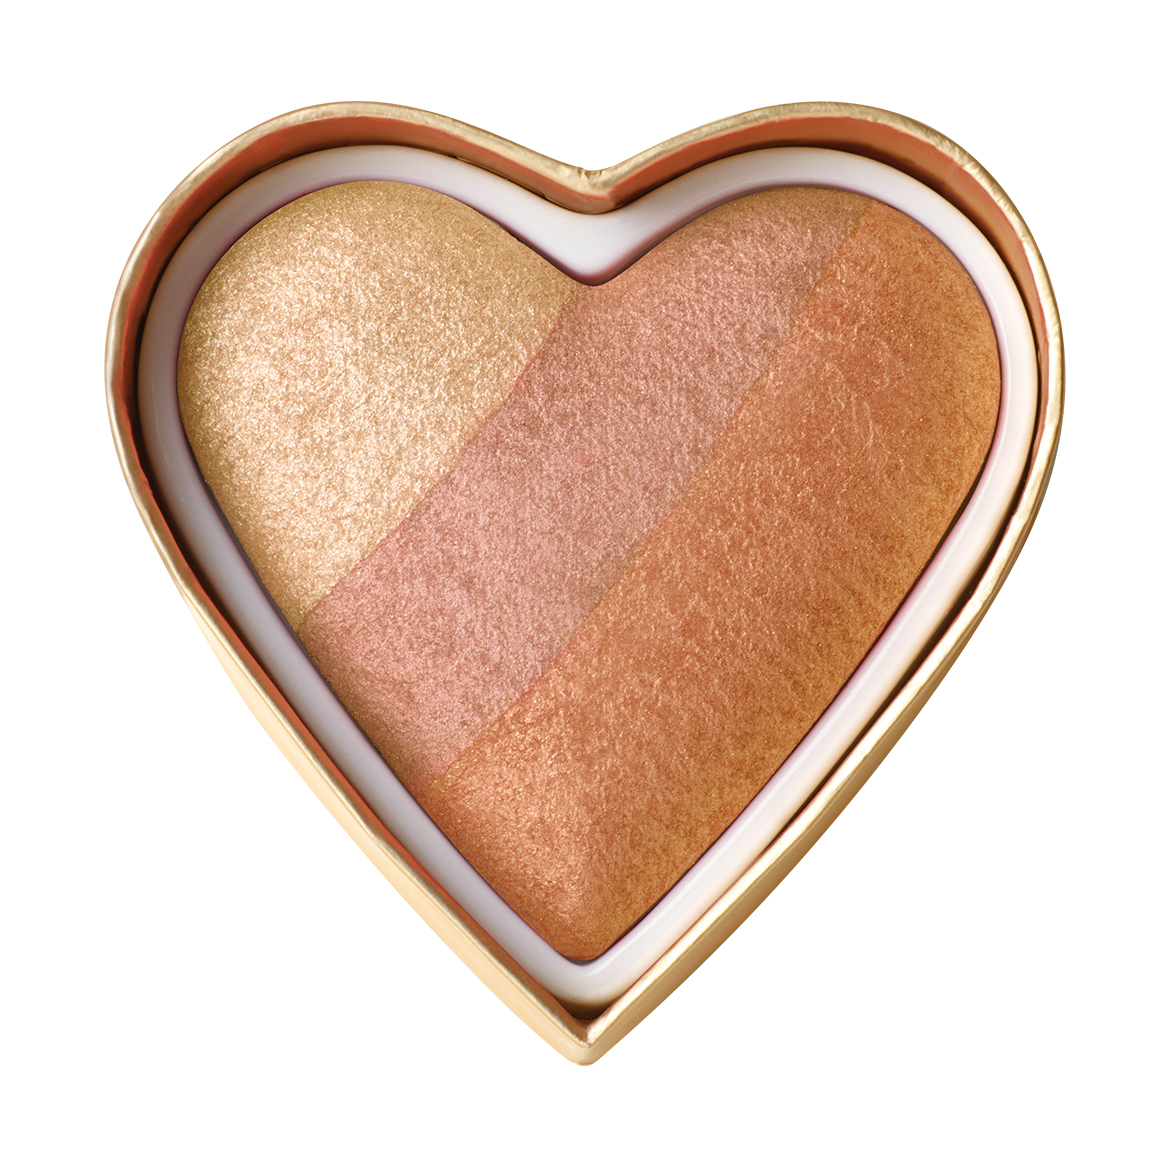 PHẤN MÁ TOO FACED SWEETHEARTS PERFECT FLUSH BLUSH - MÀU PEACH BEACH